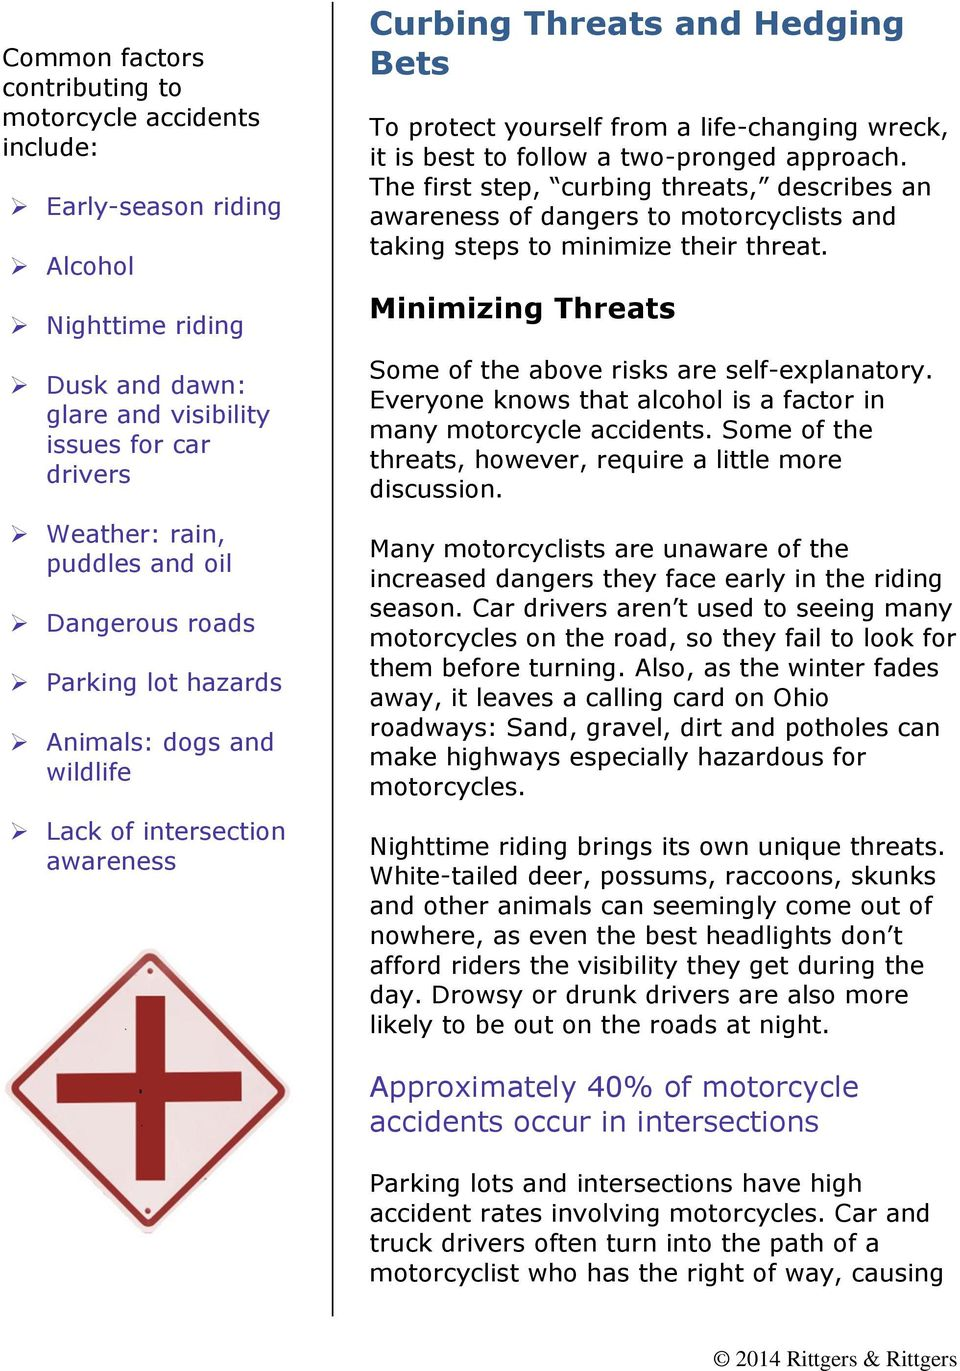 two-pronged approach. The first step, curbing threats, describes an awareness of dangers to motorcyclists and taking steps to minimize their threat.